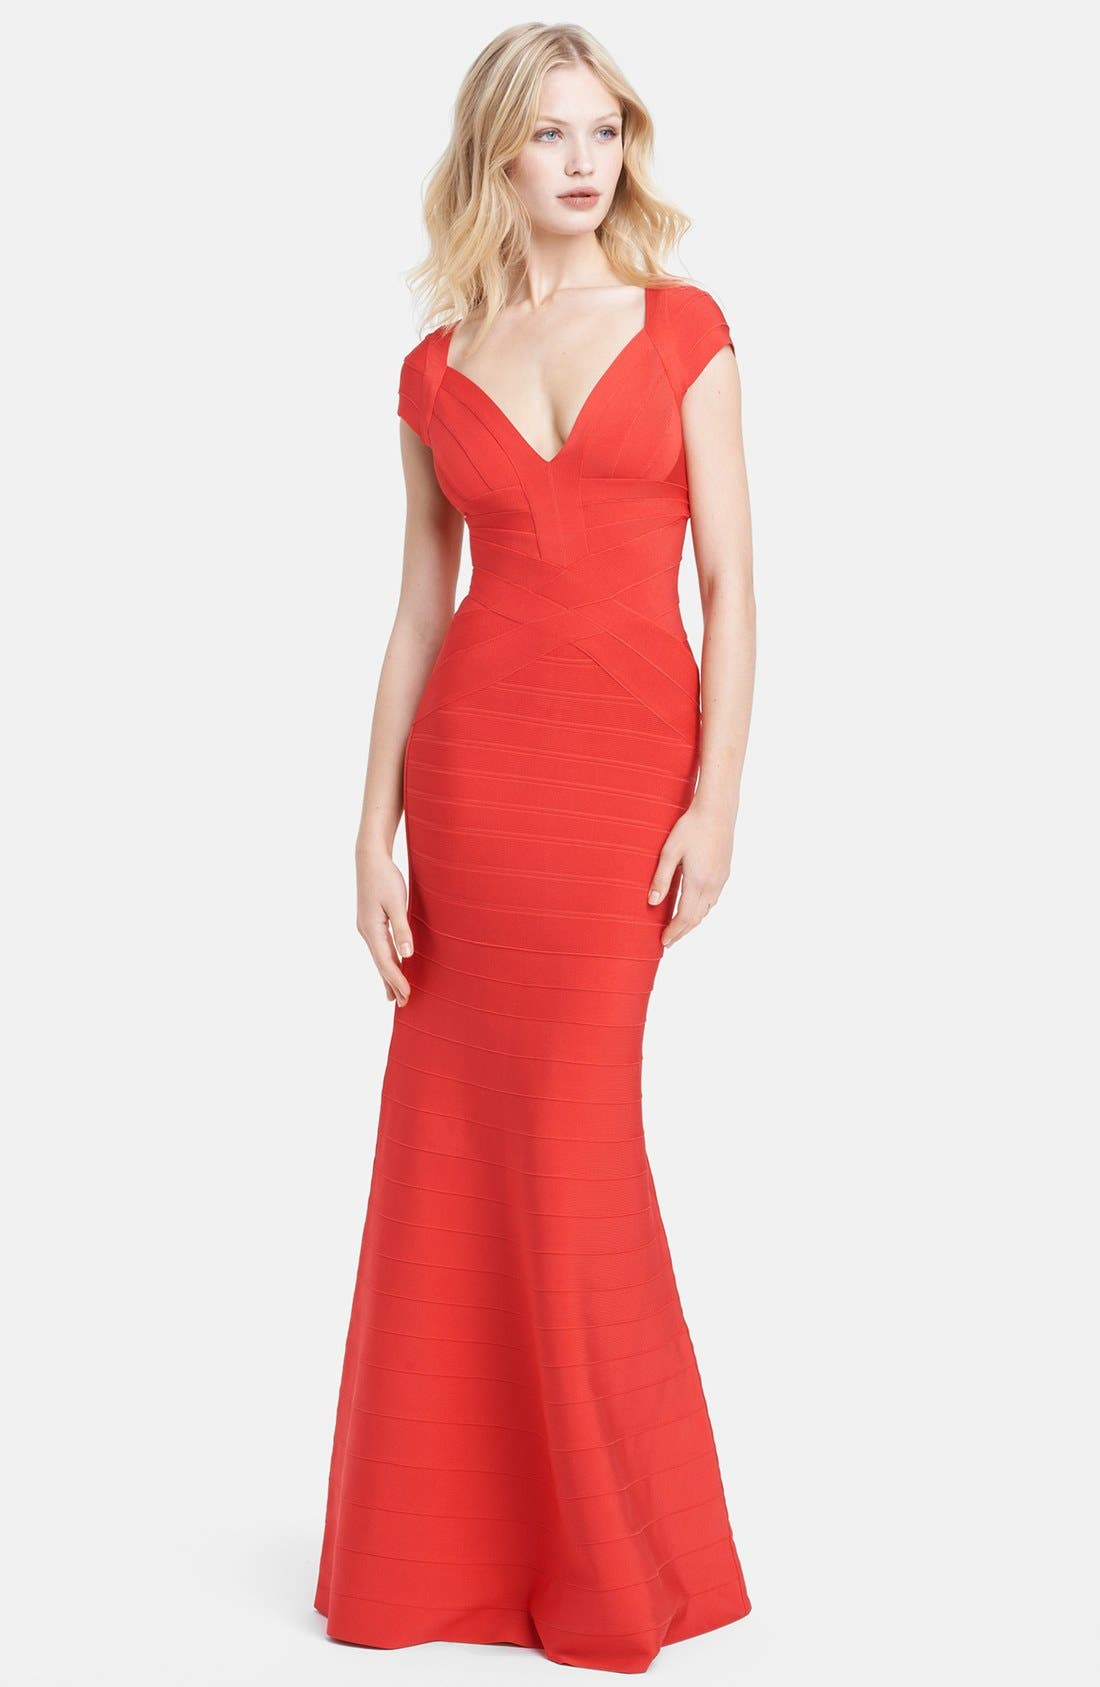 Main Image - Herve Leger Cap Sleeve Bandage Gown